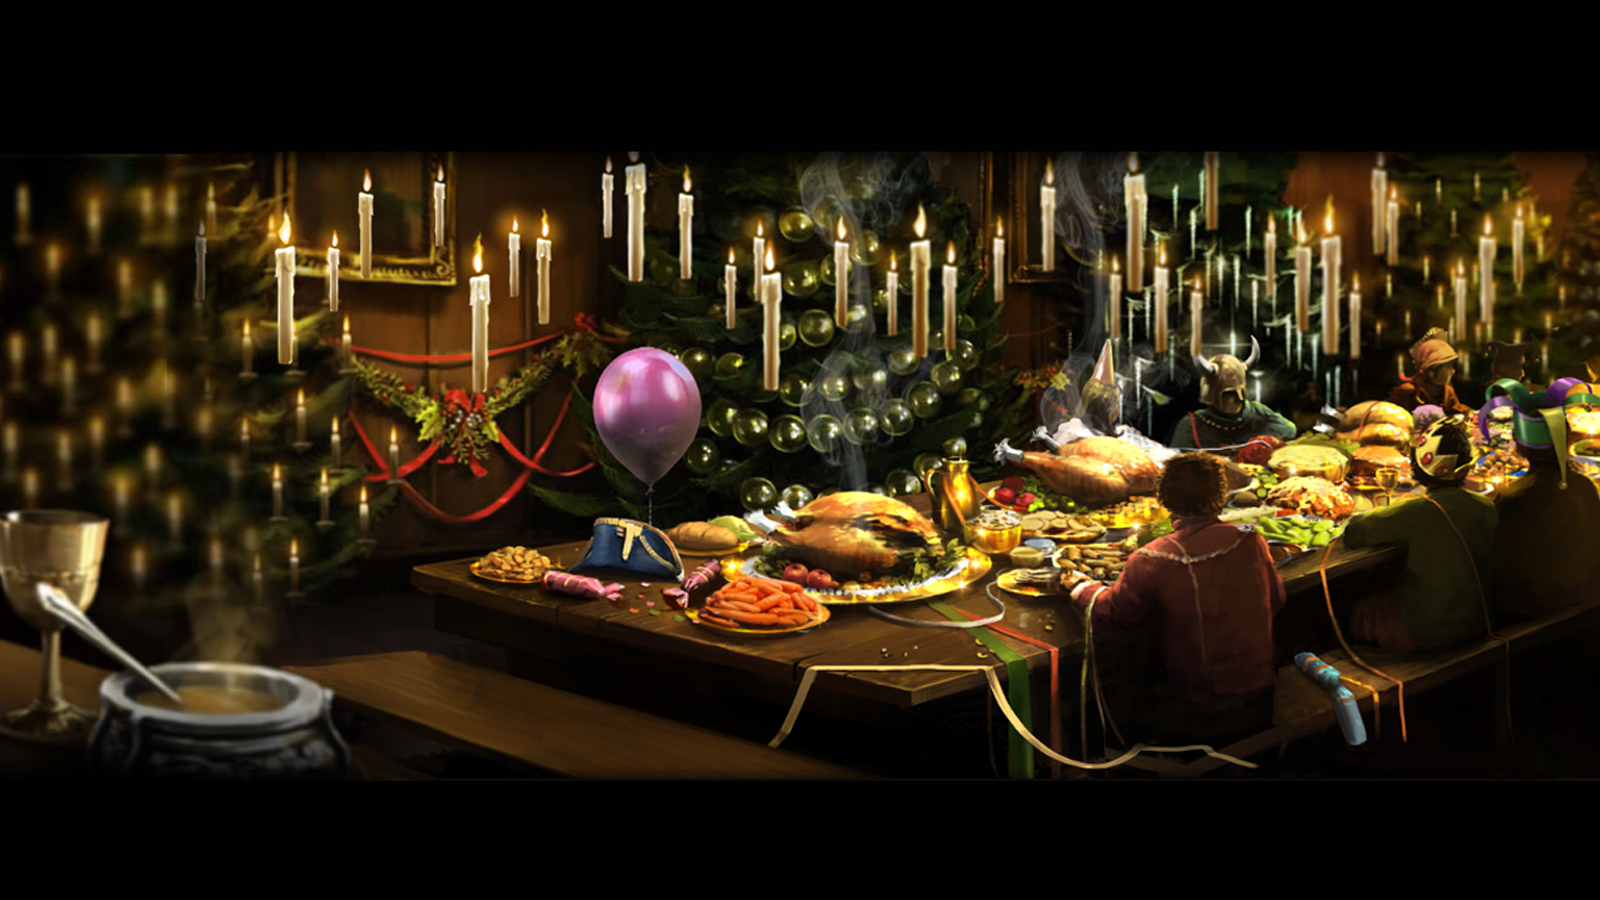 Harry Potter Christmas Wallpaper Hd.Christmas Feast Wallpapers Hd Wallpapers Plus